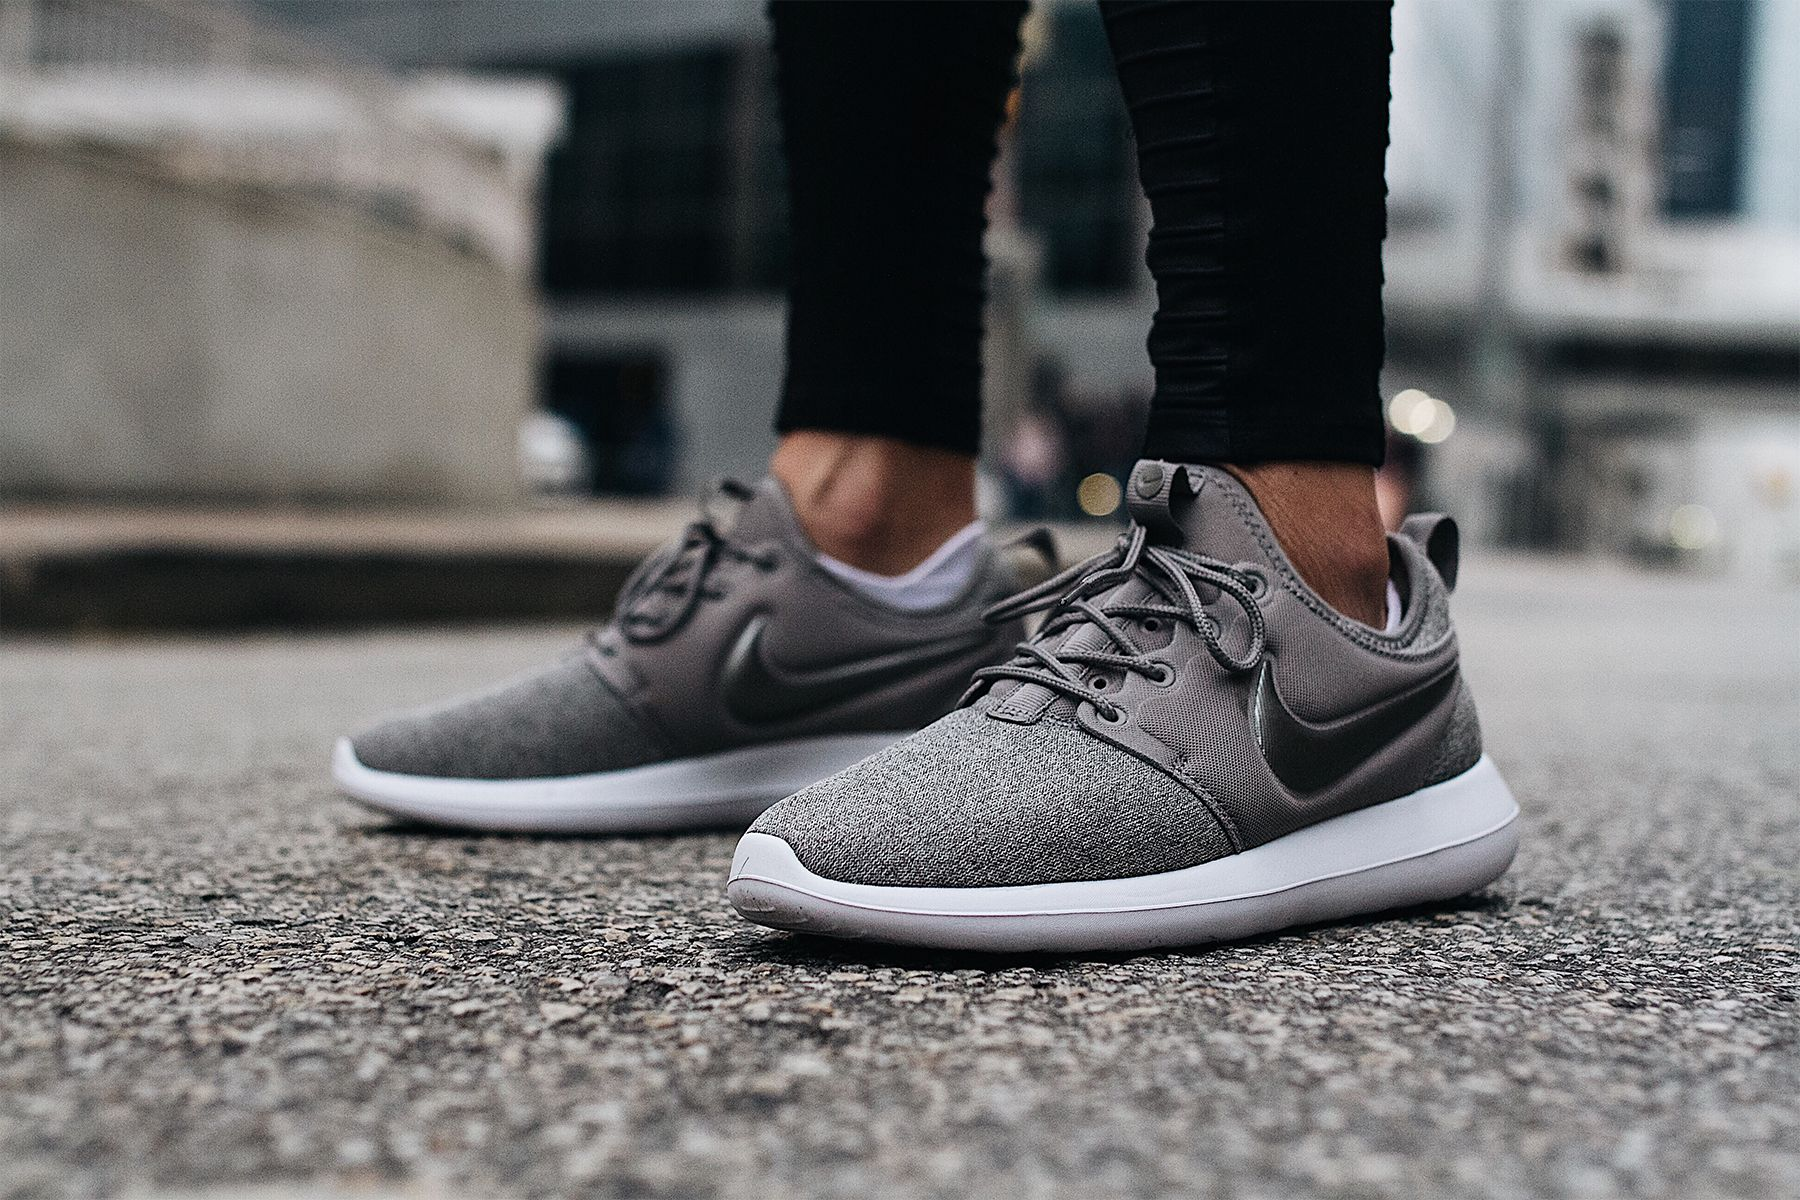 innovative design da0d4 ce32b Nike Roshe Two Knit Grey Sneakers Fashion Jackson Dallas Blogger Fashion  Blogger Street Style